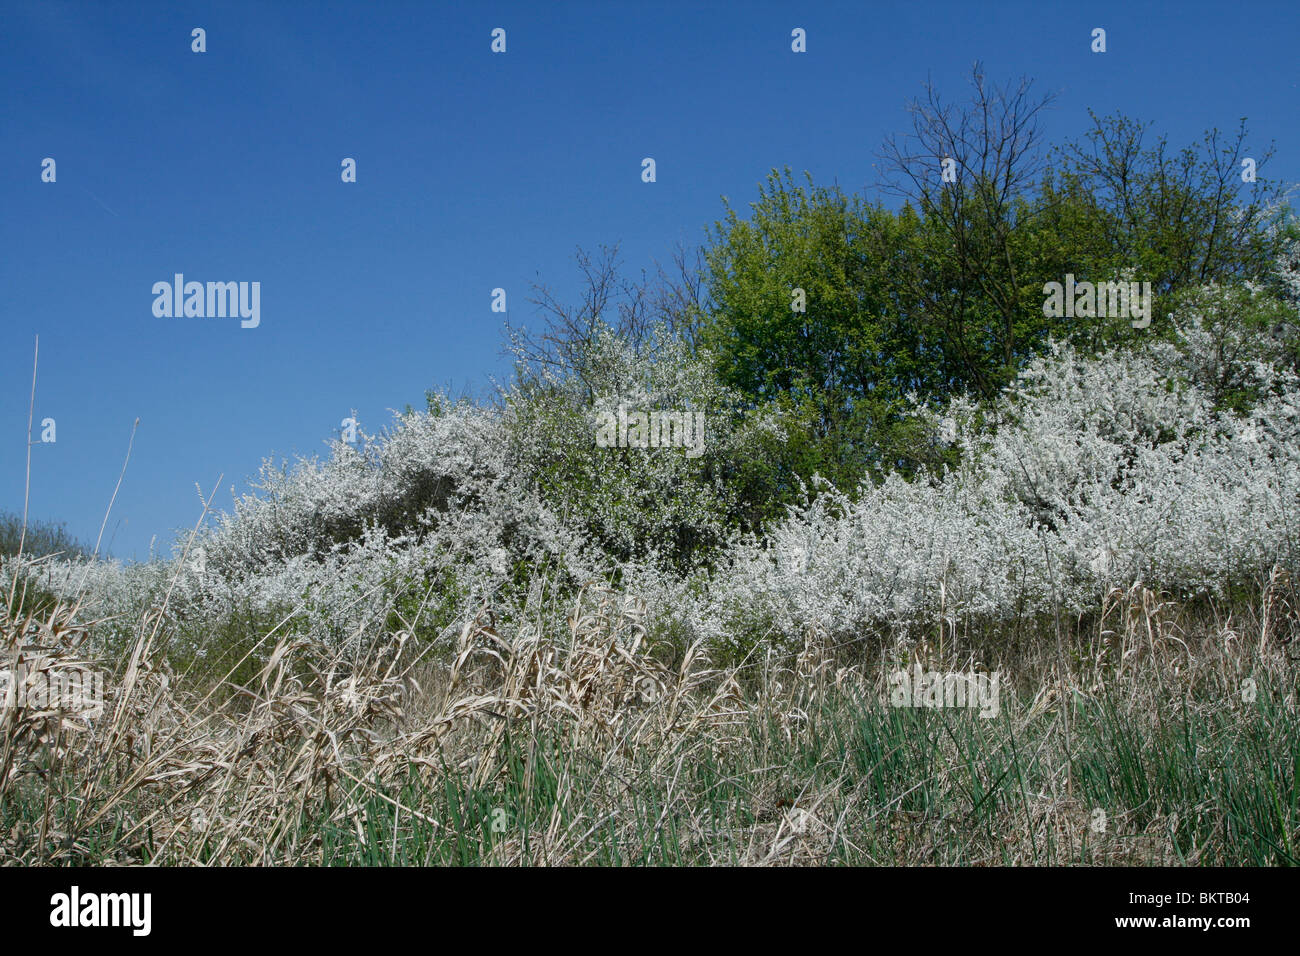 Gradually transition of blackthorn and common hawthorn to solitary common oaks - Stock Image